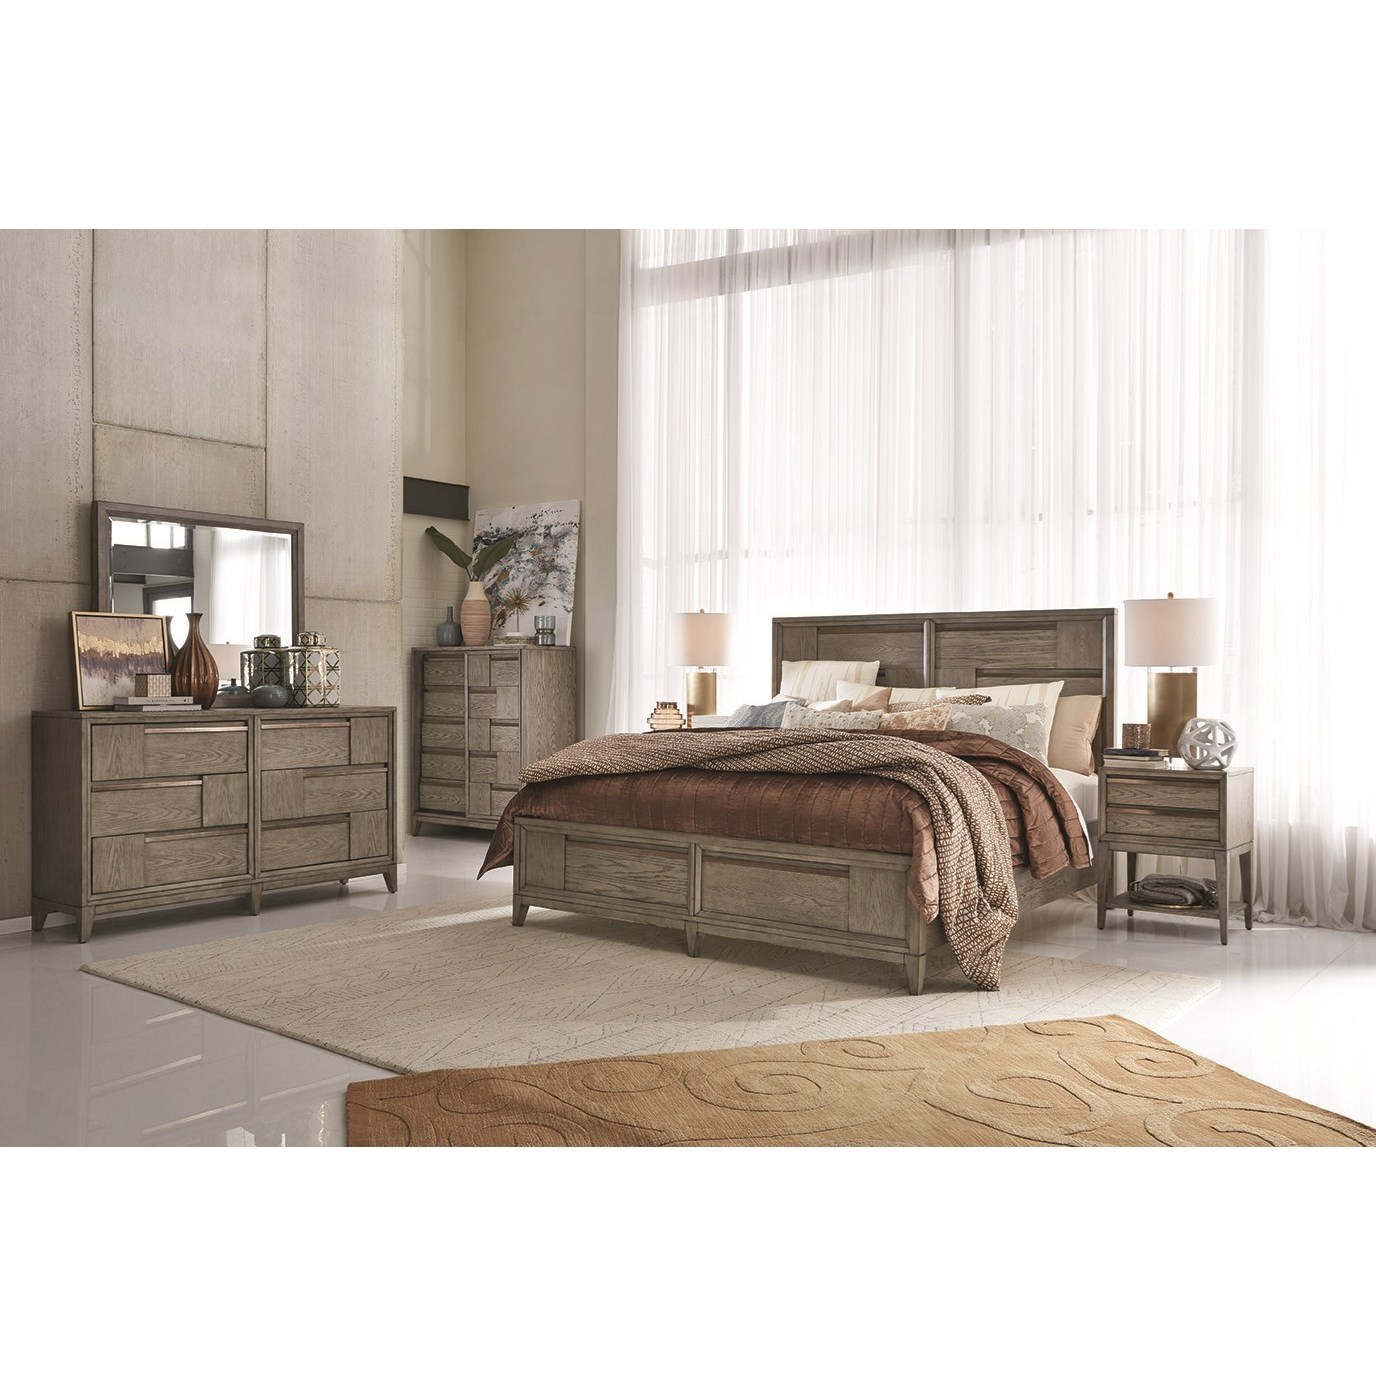 Atelier Cal King Bedroom Group by Magnussen Home at Value City Furniture